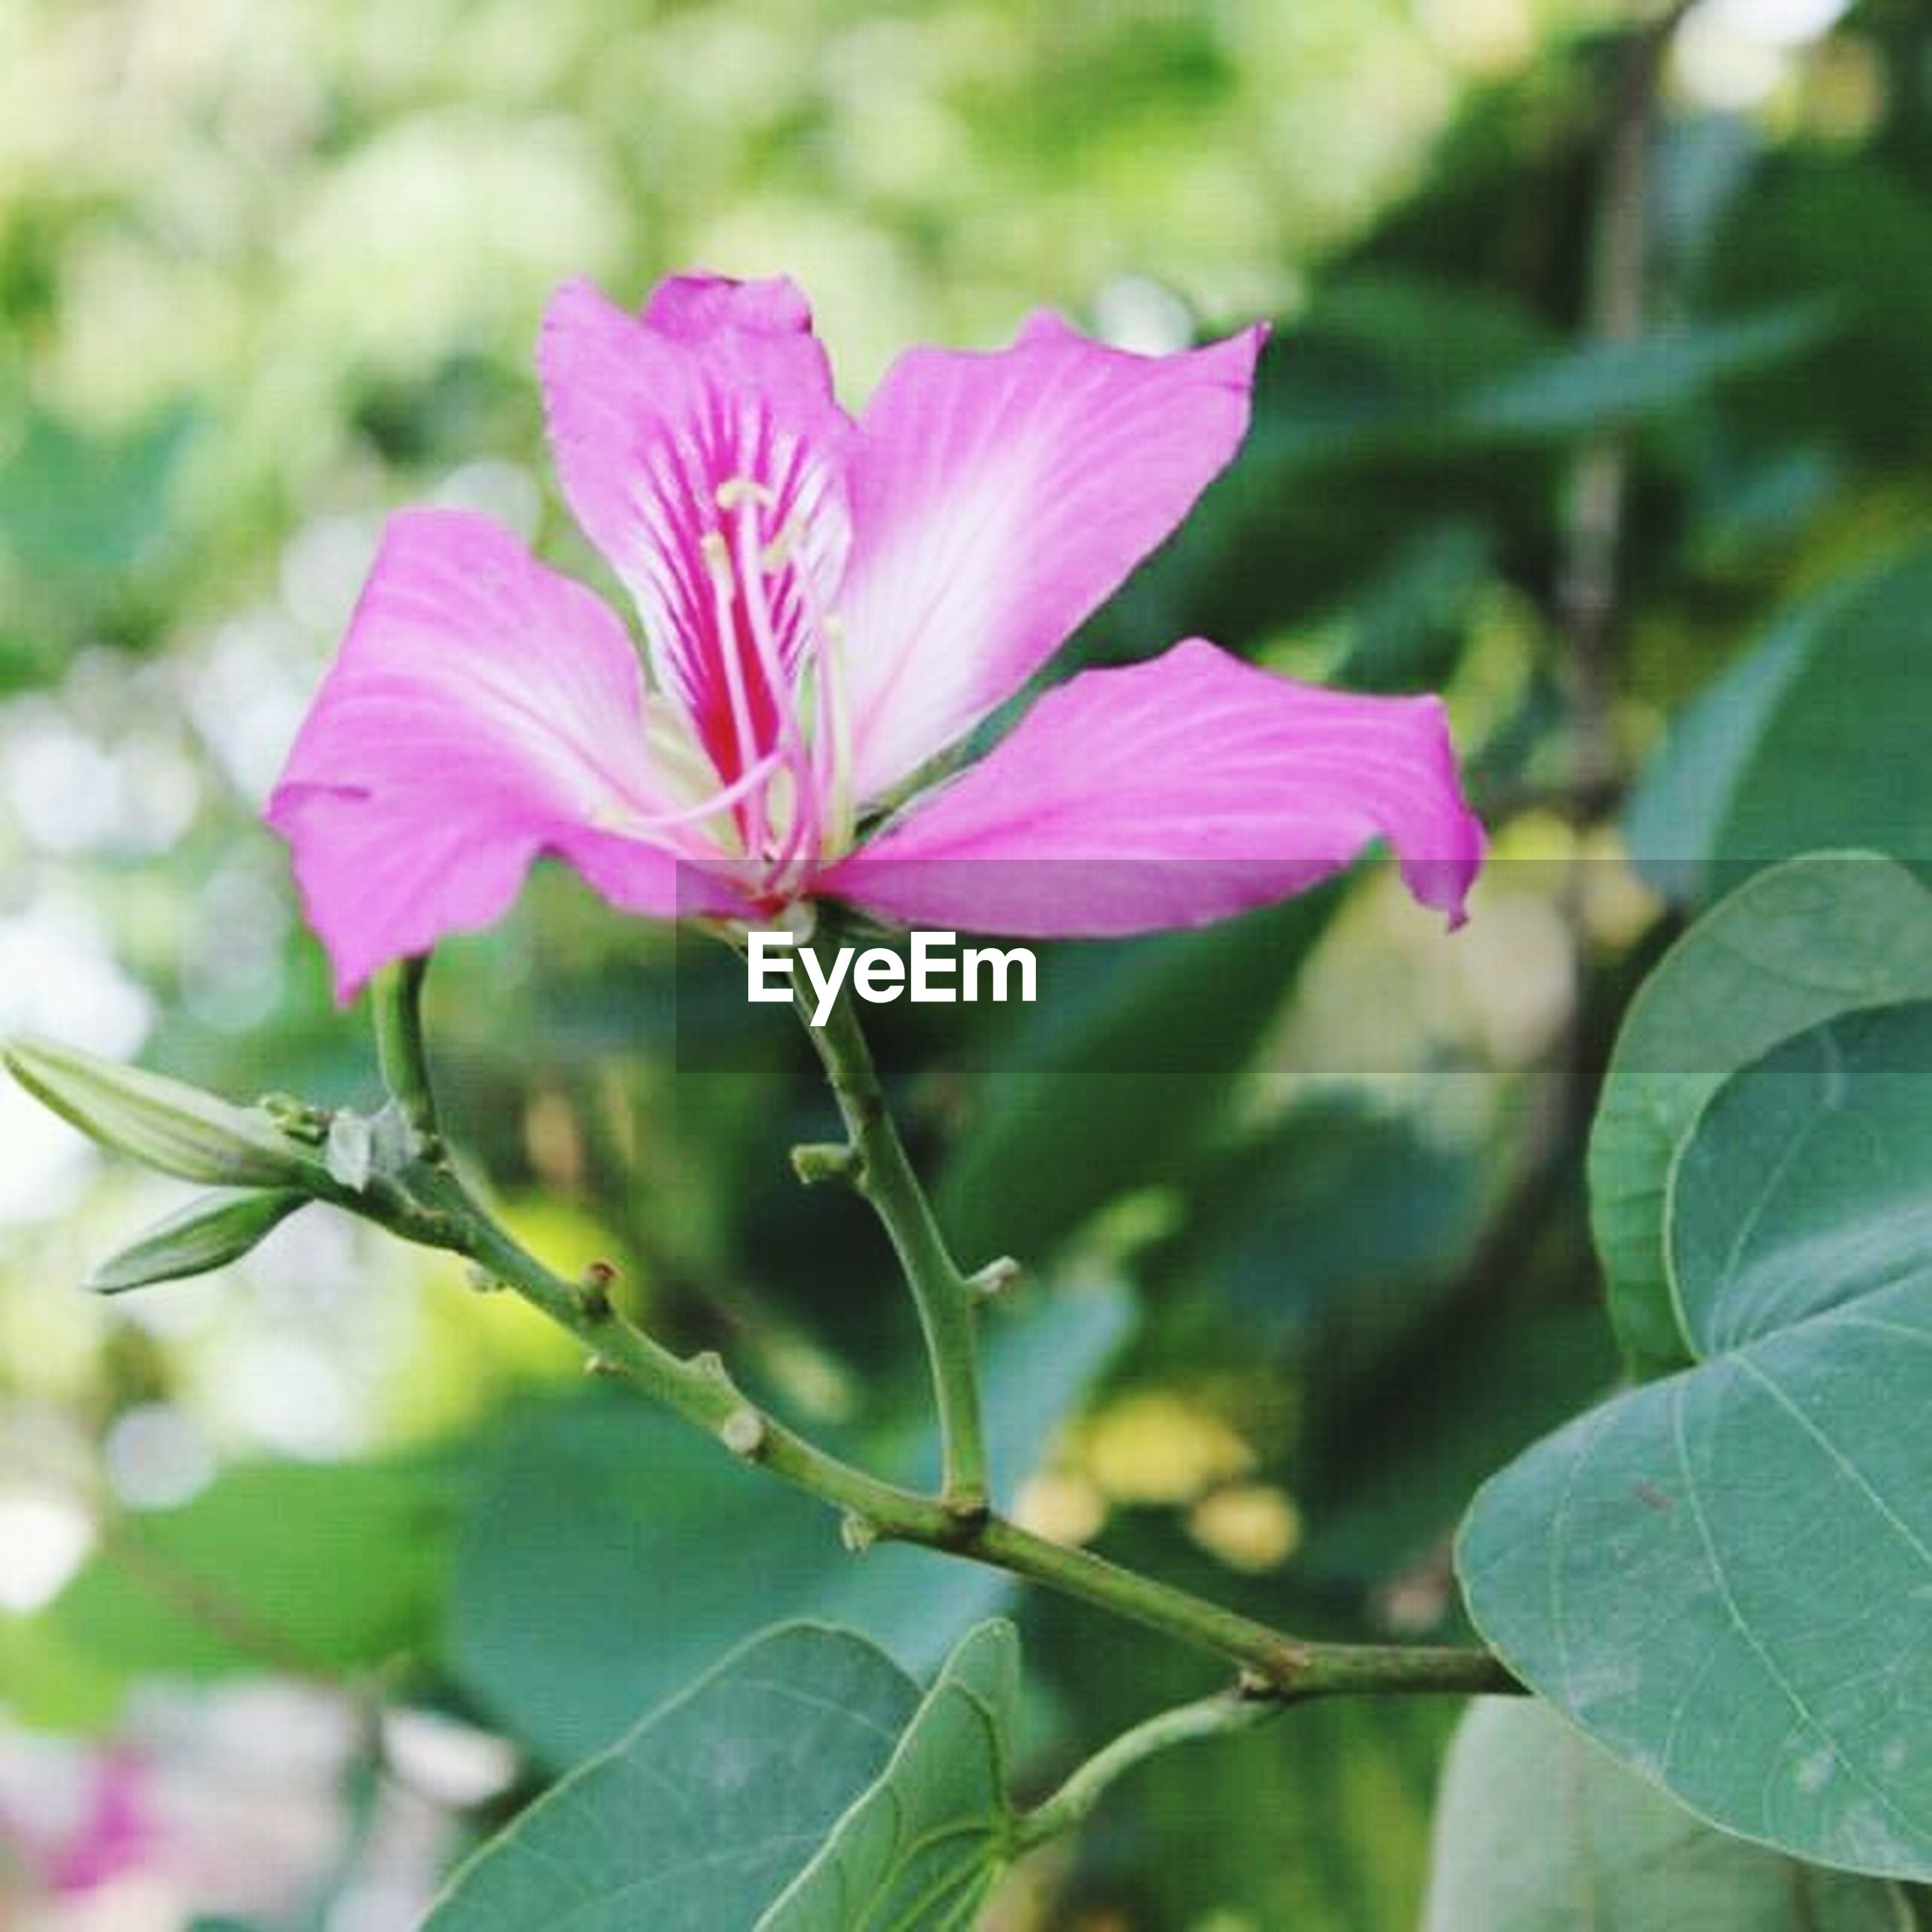 flower, freshness, petal, fragility, flower head, pink color, growth, beauty in nature, close-up, leaf, focus on foreground, nature, blooming, single flower, plant, stem, in bloom, blossom, pink, stamen